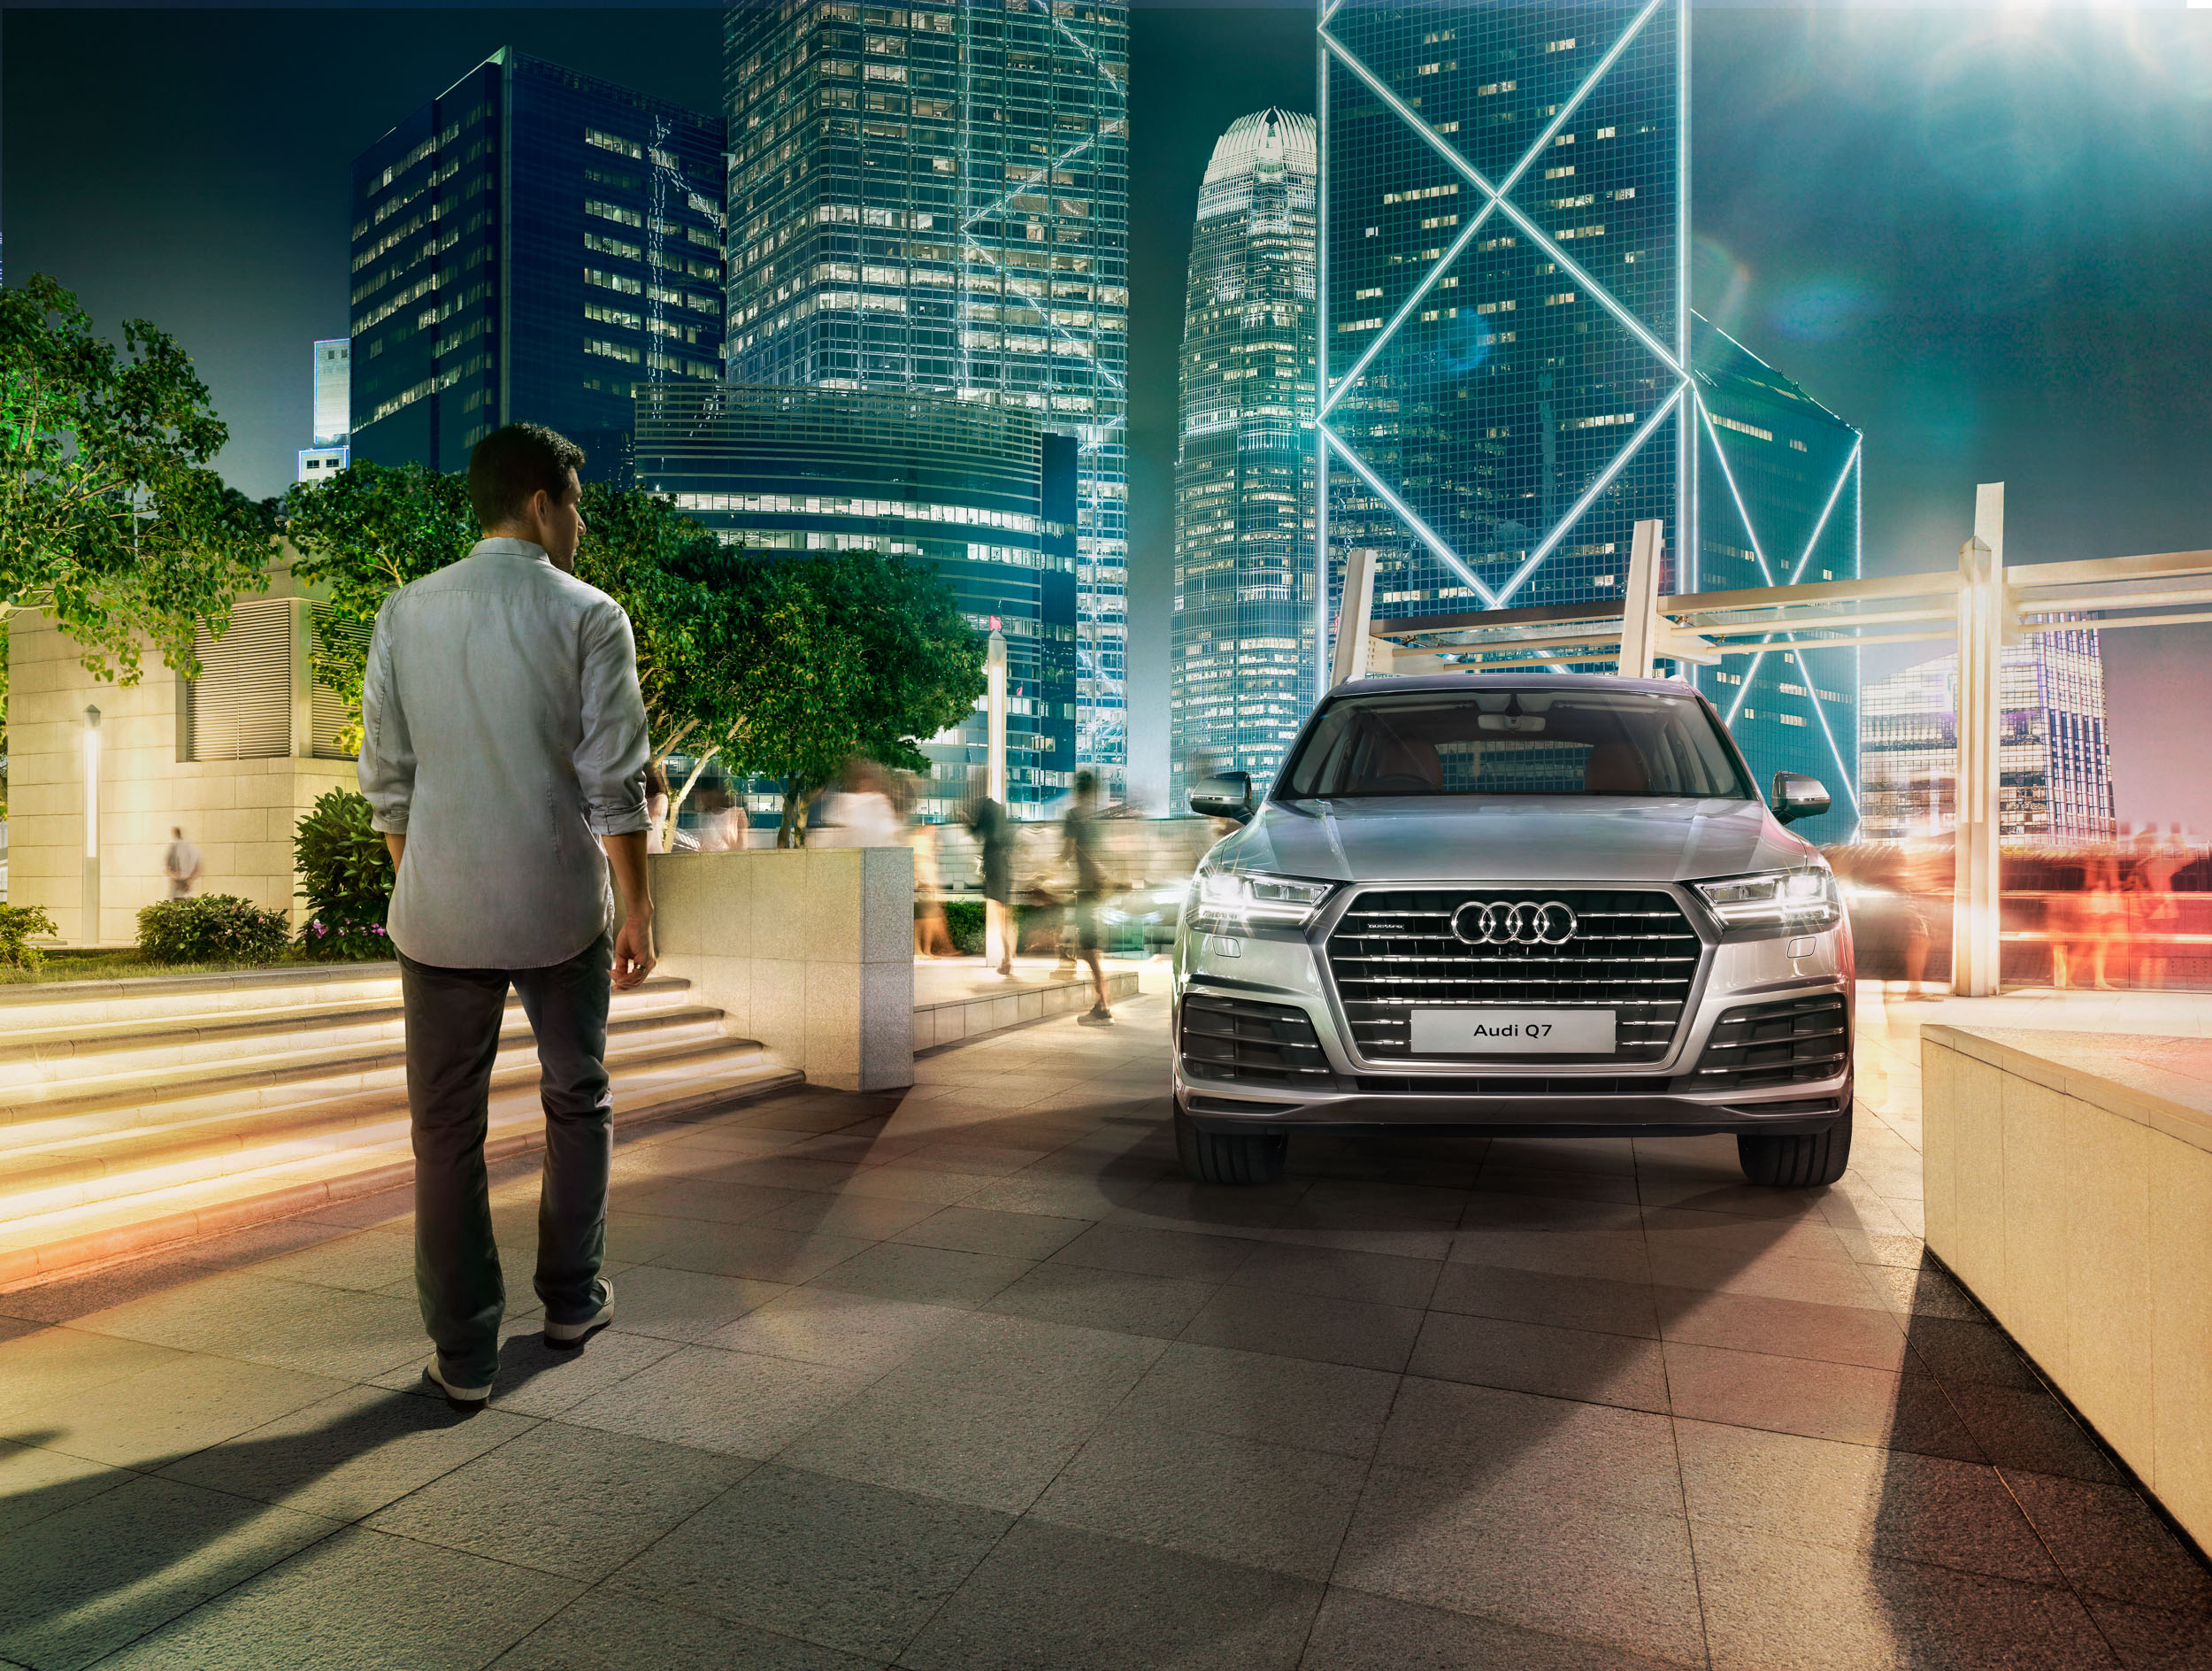 migs-foto-cgi-photographer-automotive-car-hong-kong-michael-lee-advtertising-commercial-photography-Audi-2016-HK Q7_IFC_Night_FINAL-2.5K